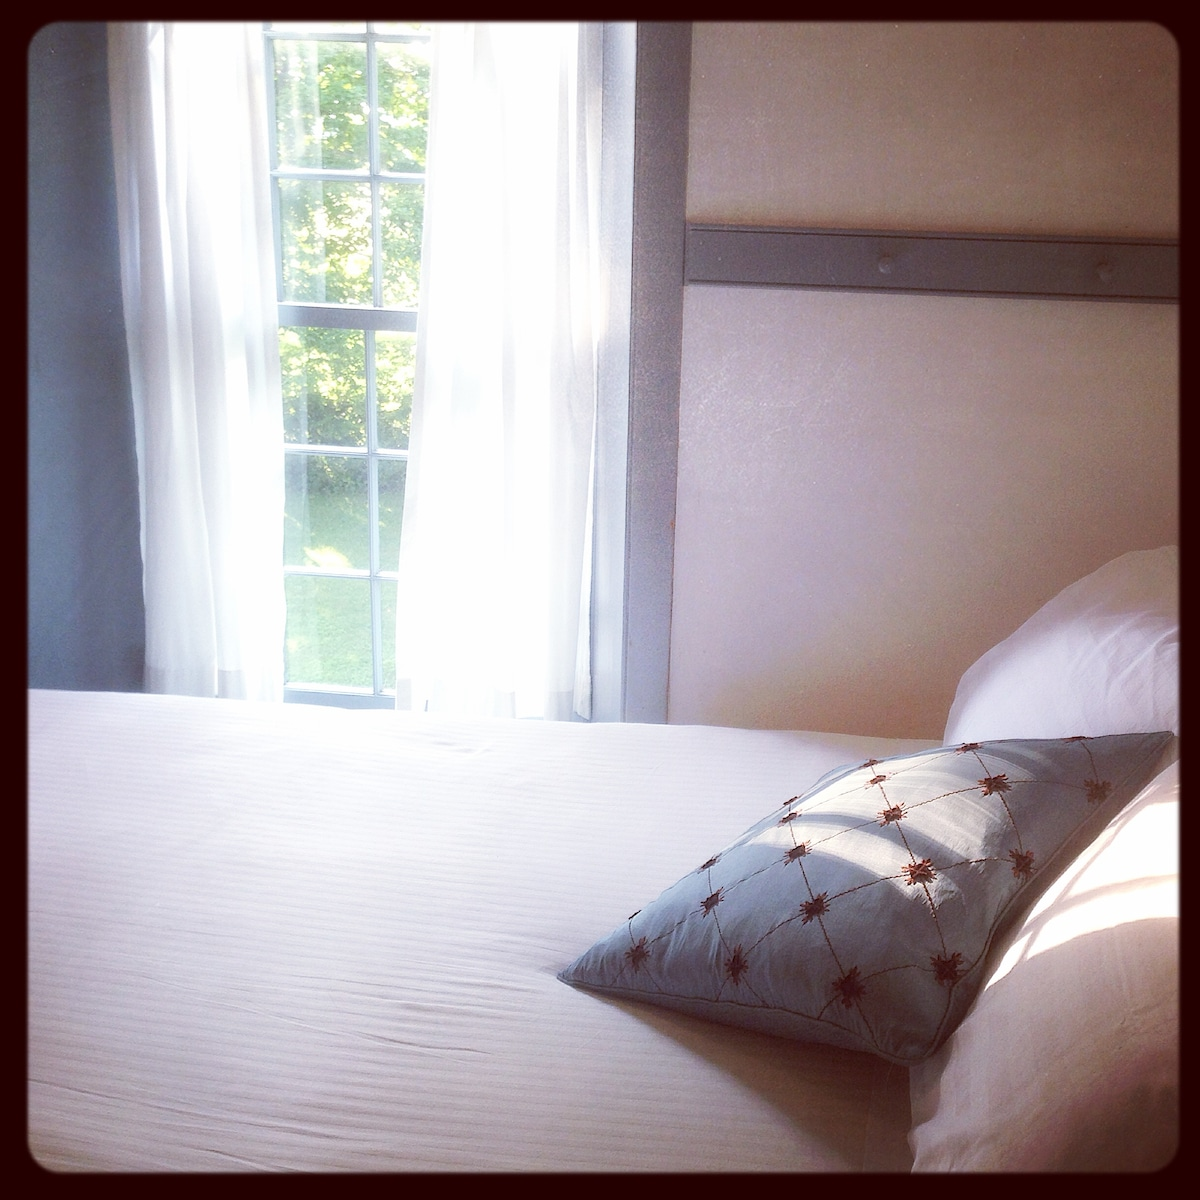 Aria B&B Blue Room - Double Bed